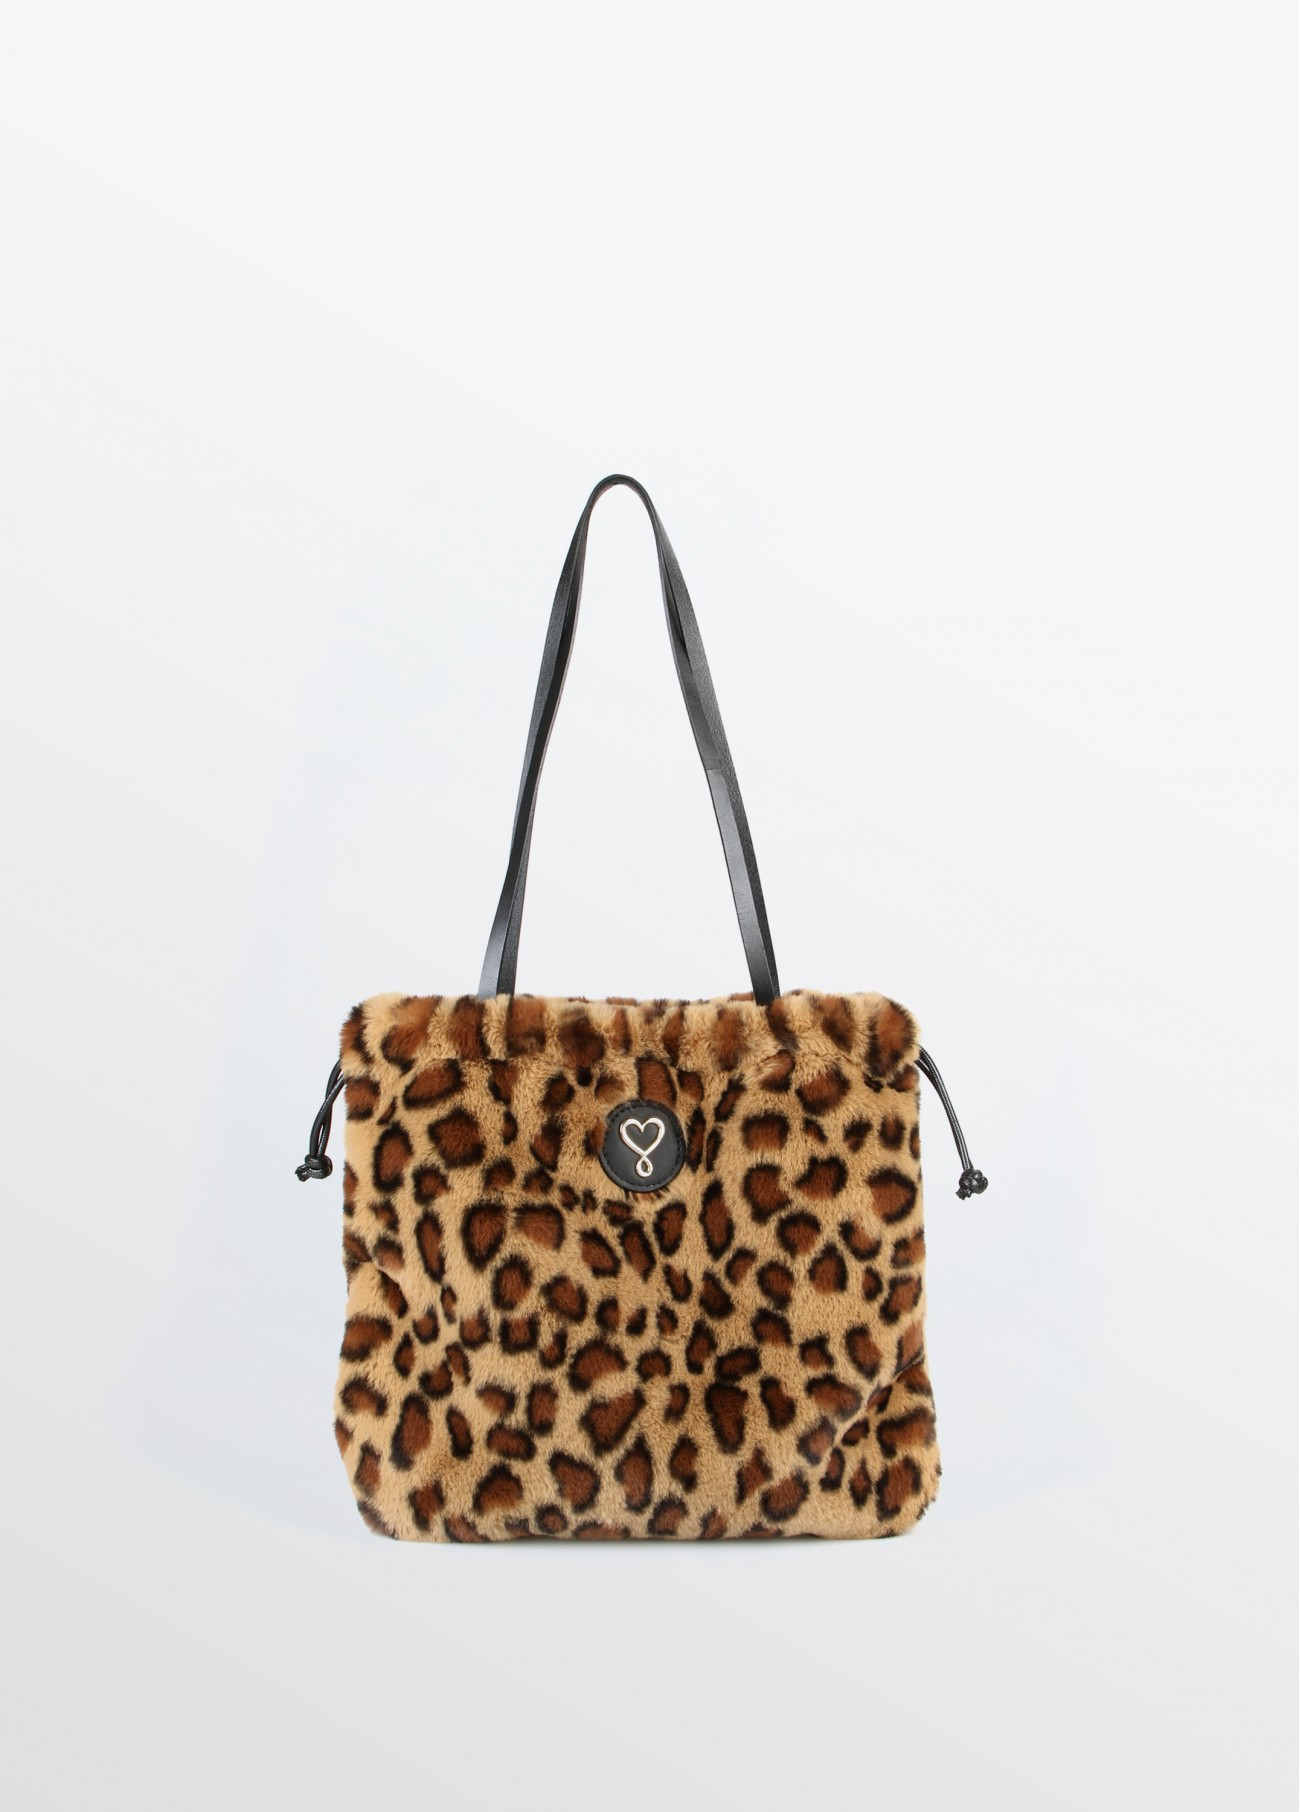 Bolso mini fake fur leopardo, estampado 2